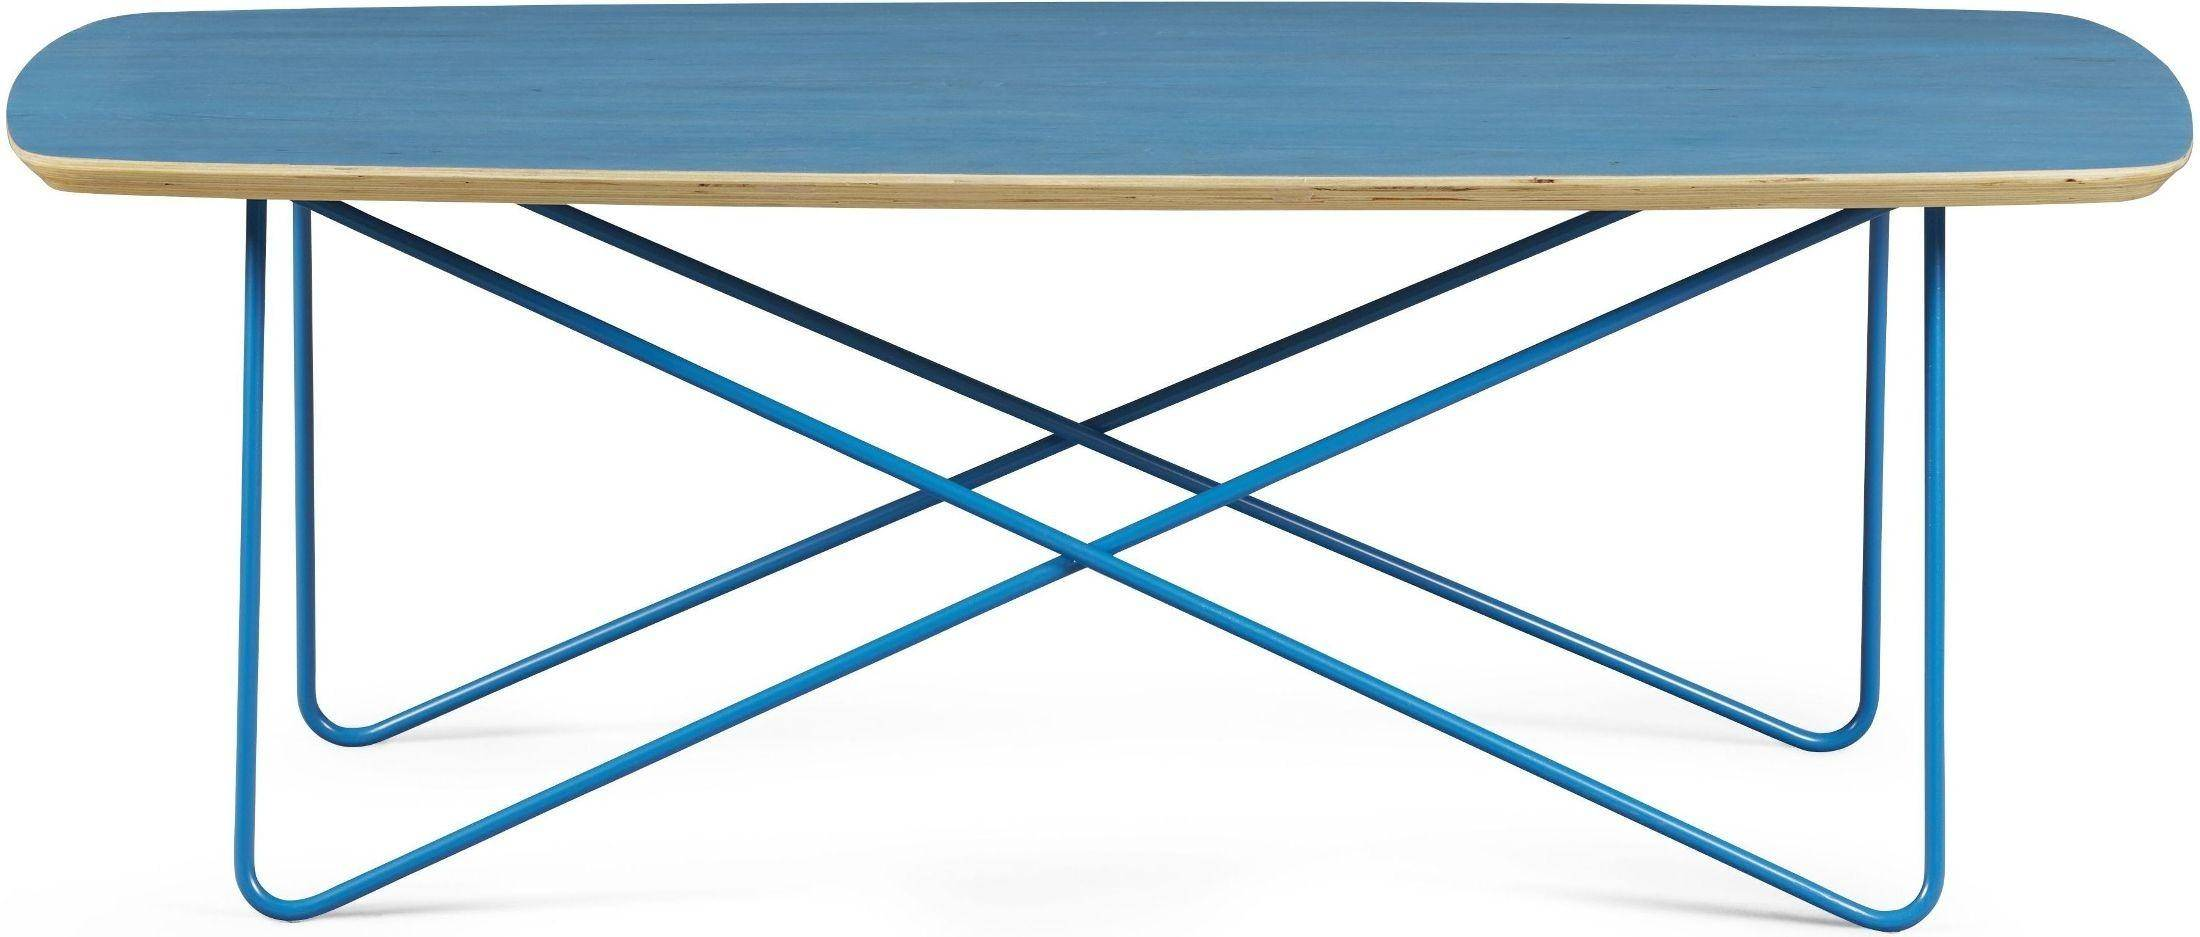 Contemporary Blue Finish Occasional Table Set 2 Pcs